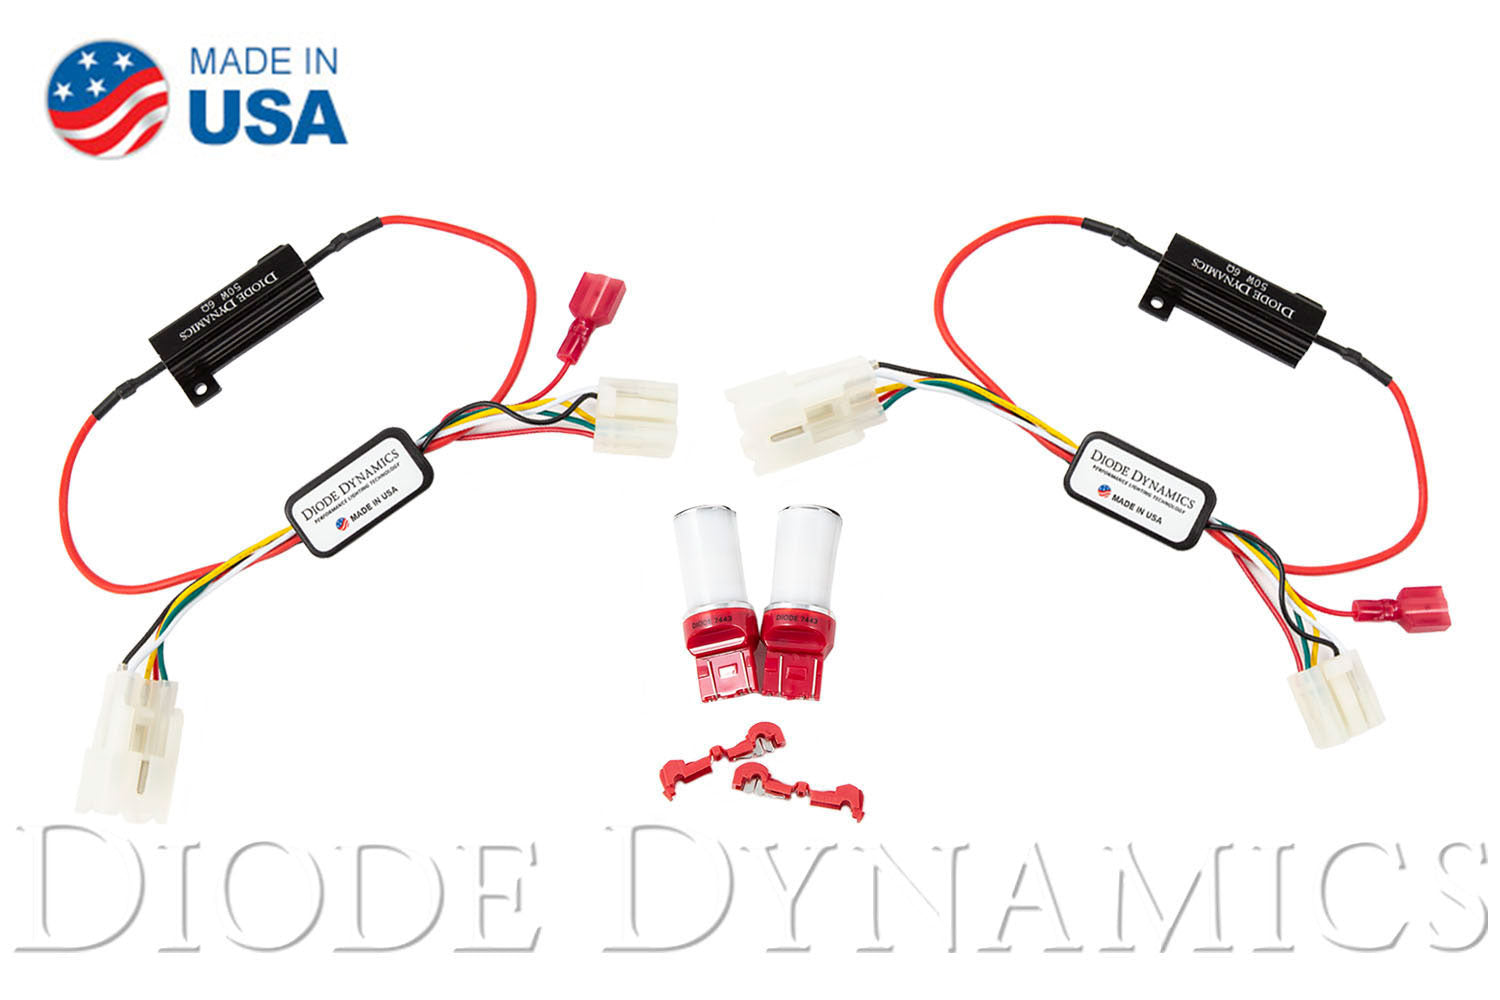 Impreza 12-16 Subaru Impreza Sedan Tail as Turn +Backup Module Diode Dynamics